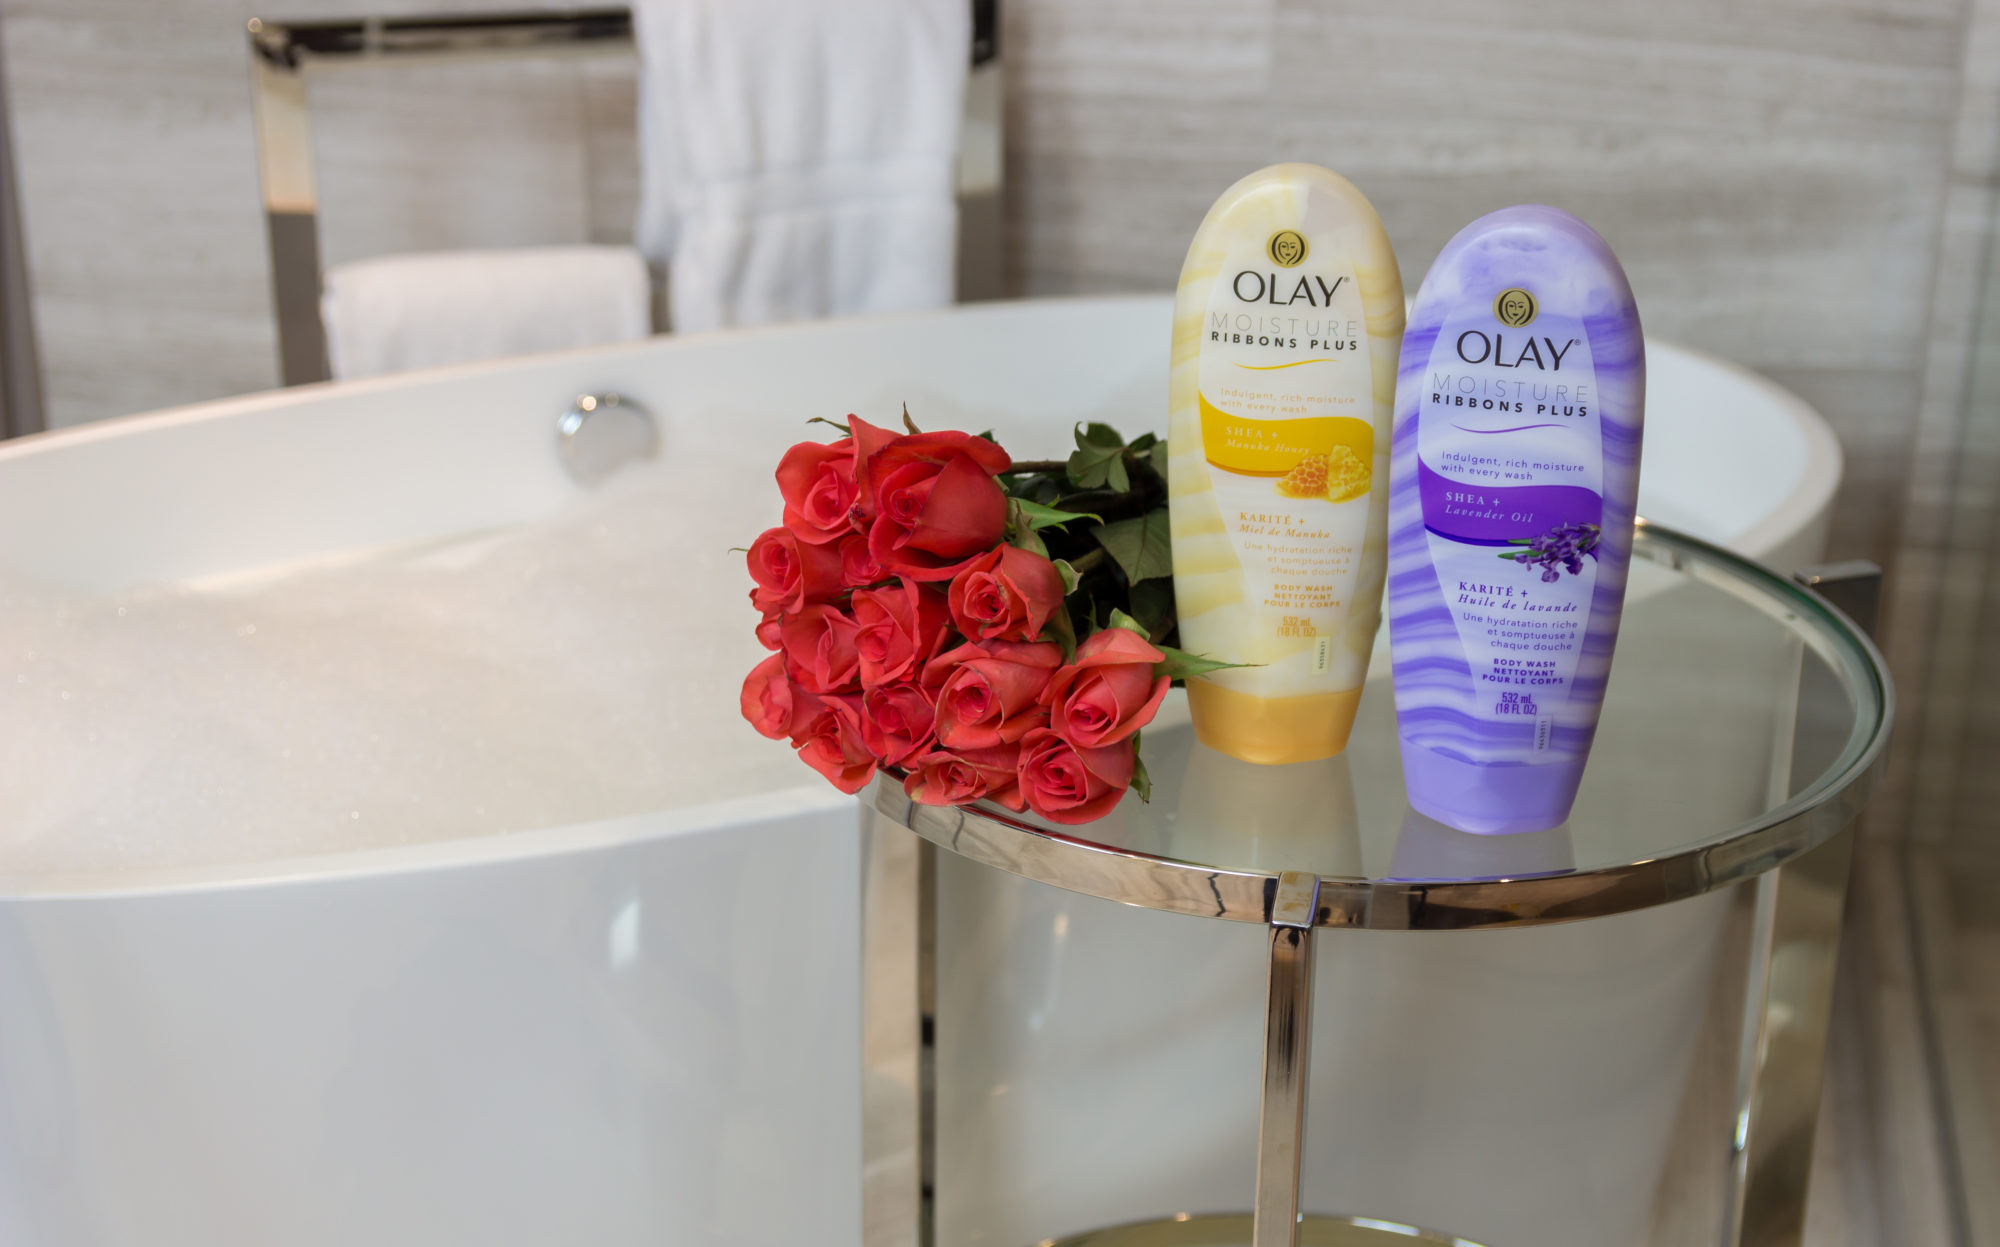 Olay Moisture Ribbon Plus - Winter Skincare: Overcome the harsh effects of winter with Olay Moisture Ribbon Plus by Seattle style blogger Gracefully Glam